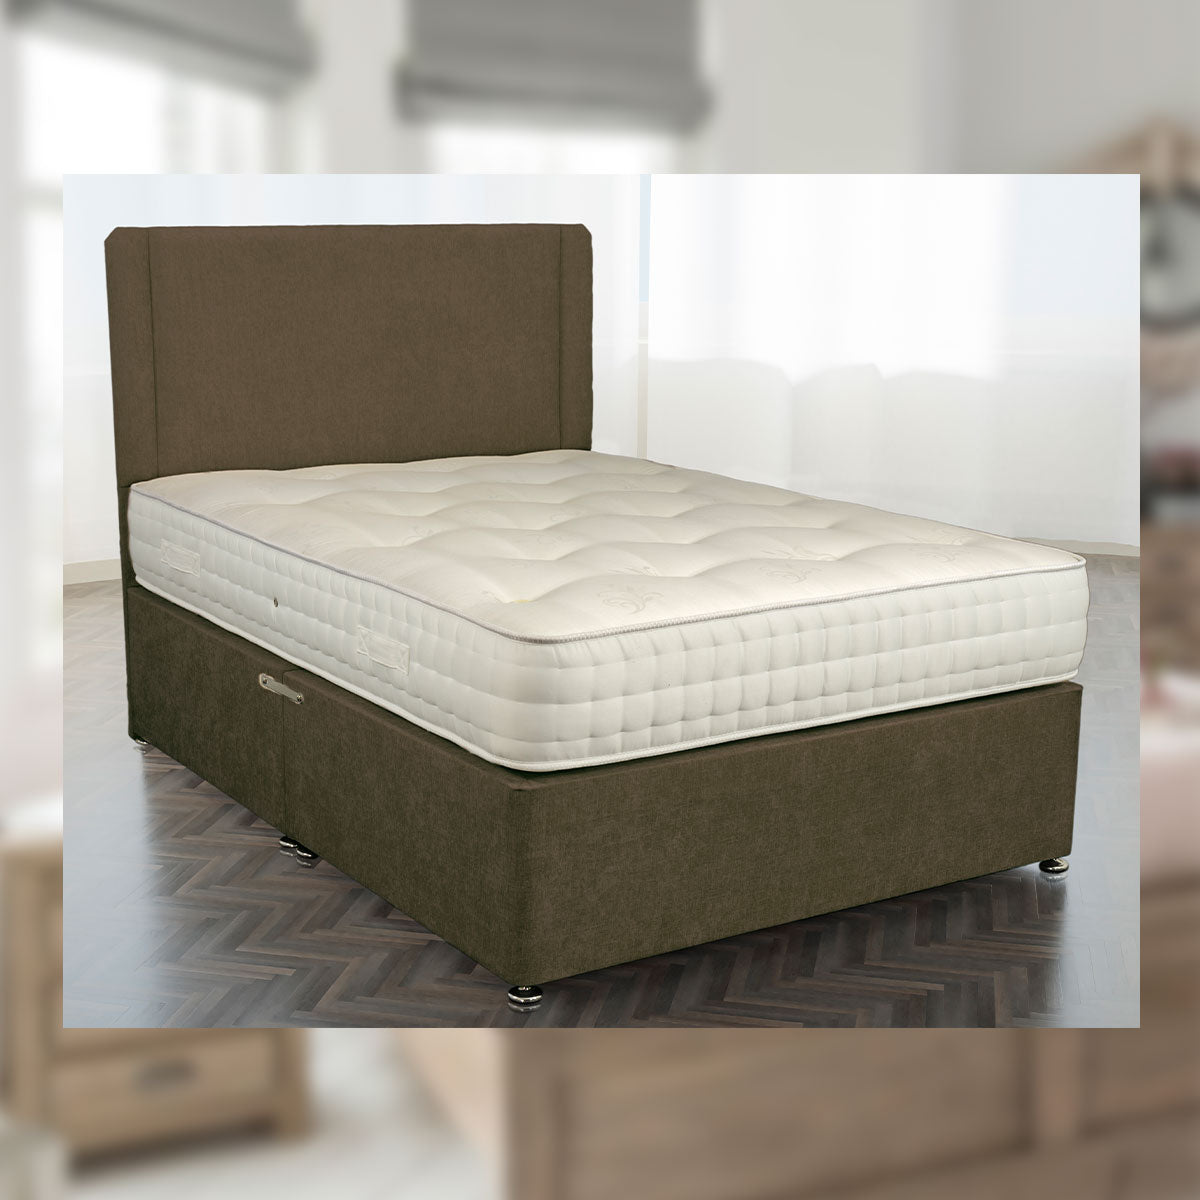 Landmark 6000 Pocket Spring Mattress Natural Luxury Fillings Available In Medium Medium Firm And Firm